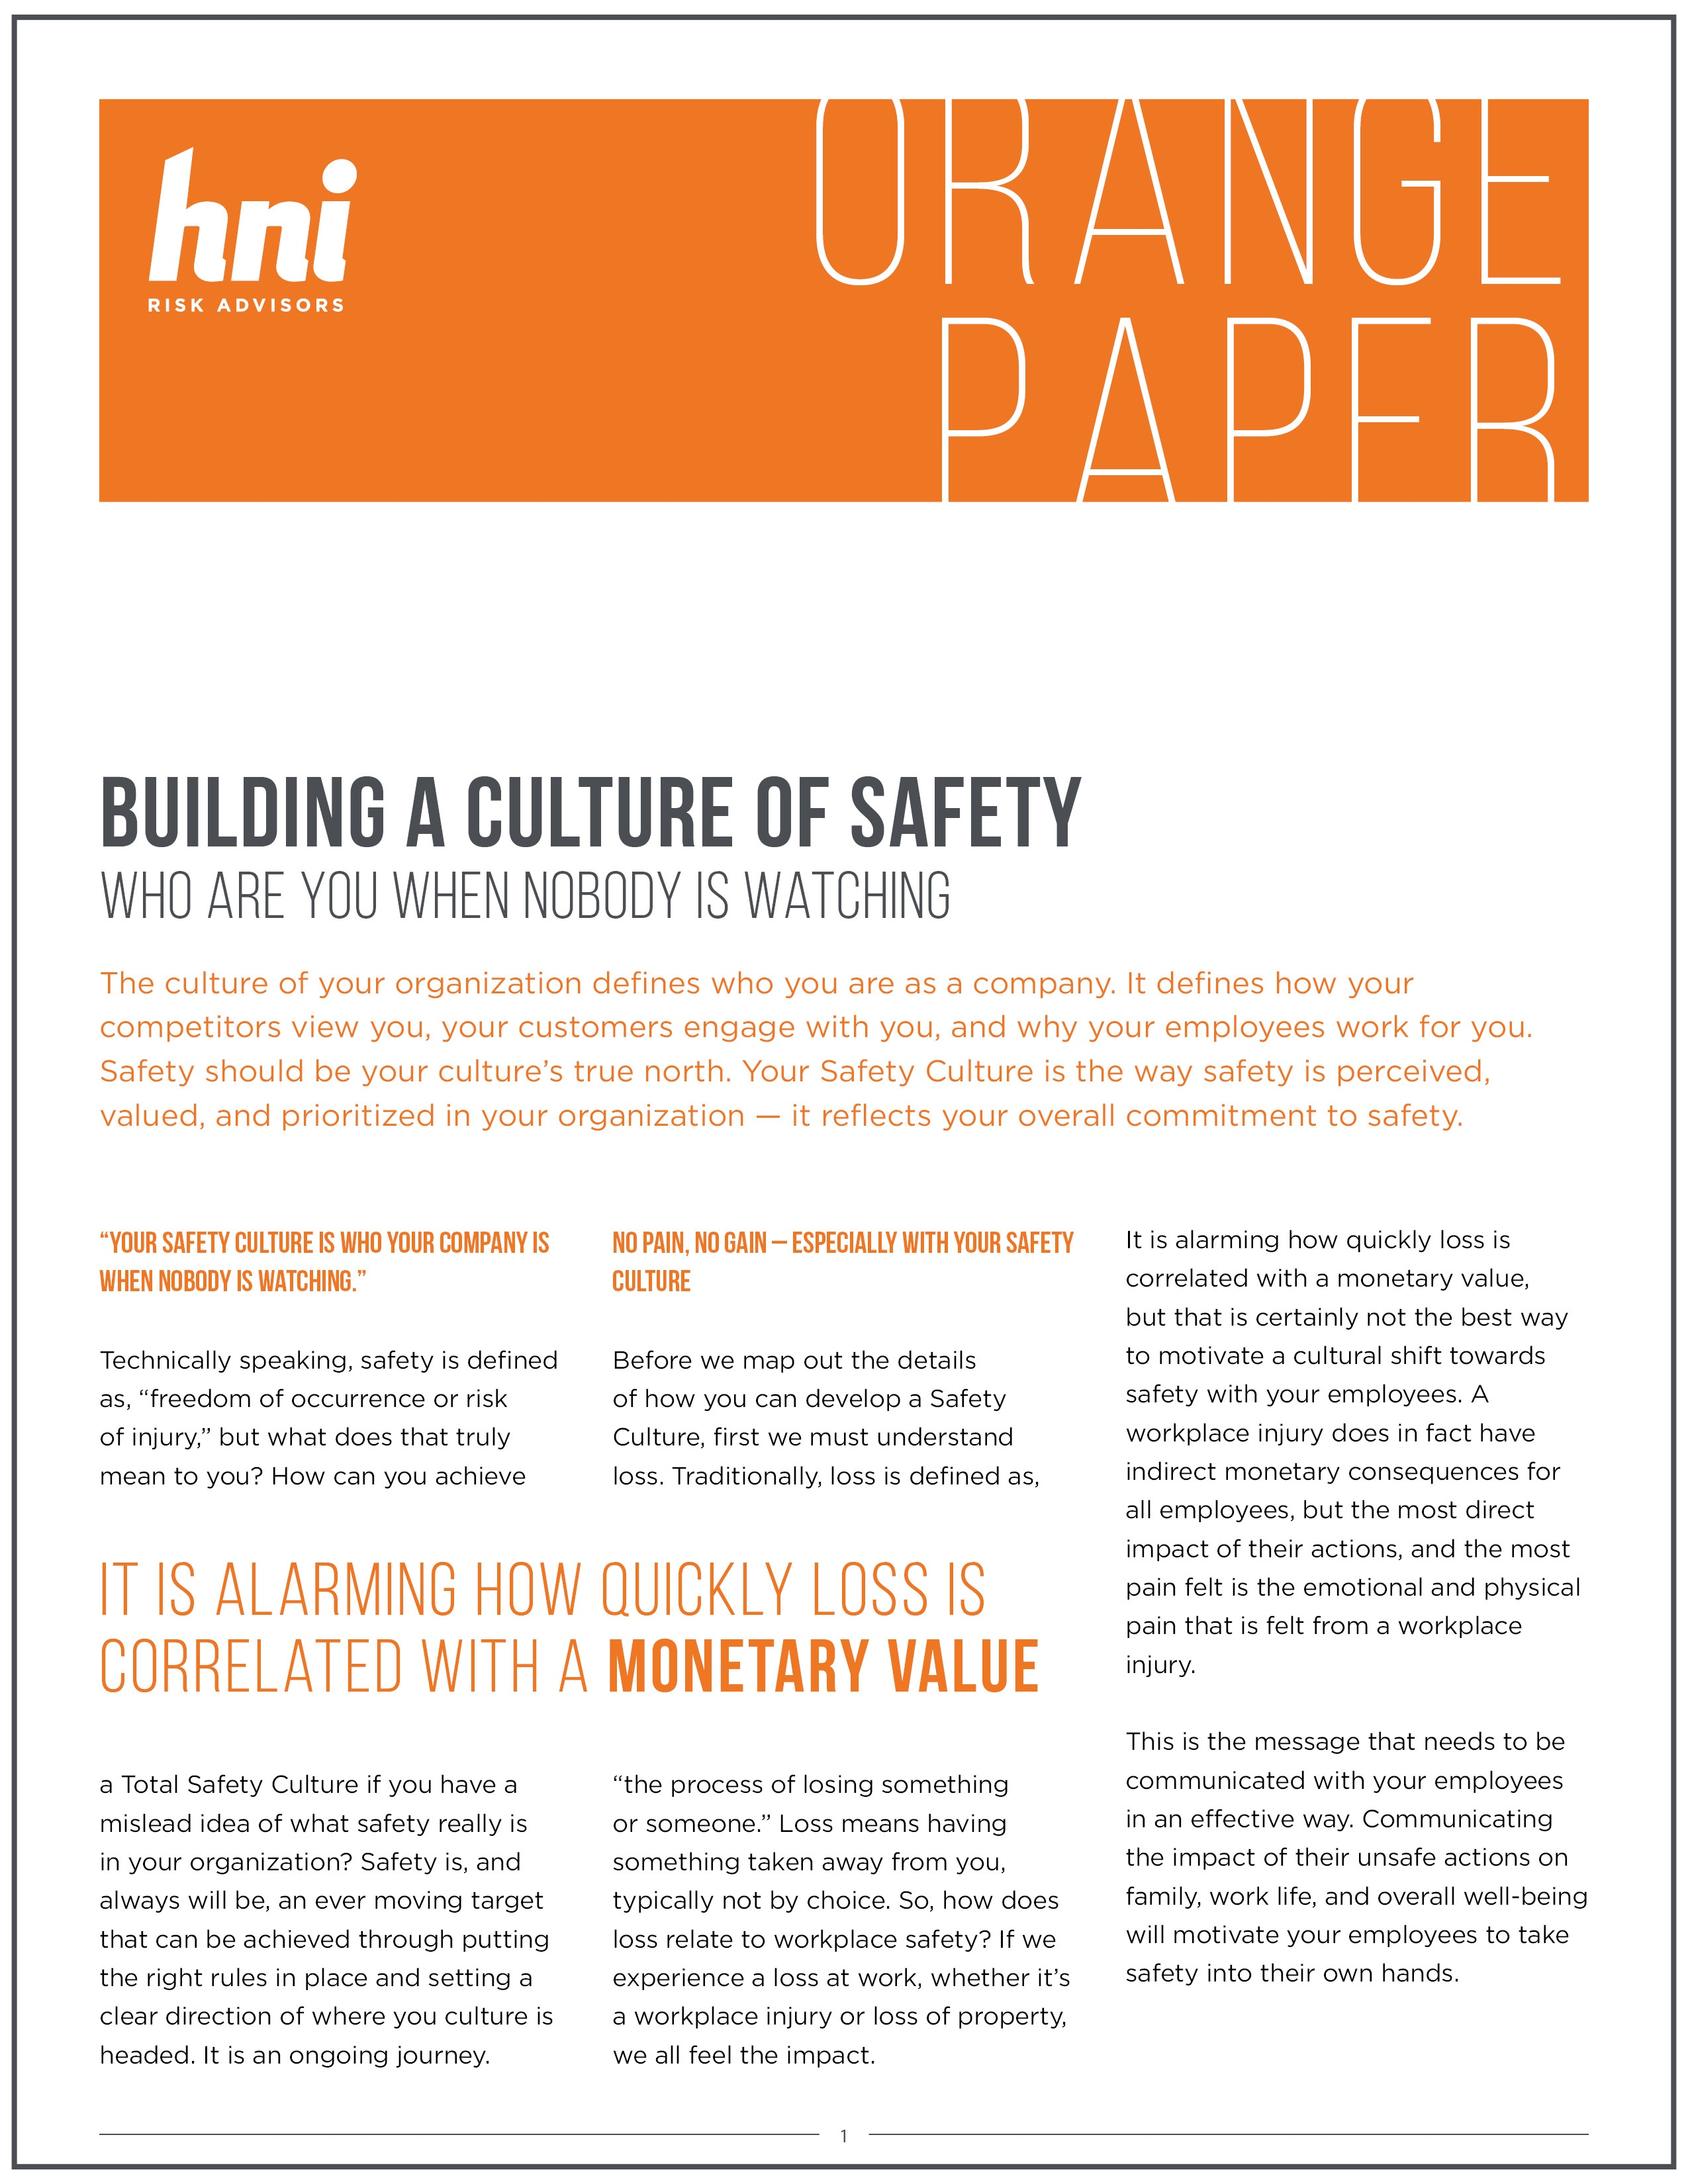 HNI_Orange Paper_Building A Culture of Safety.jpg